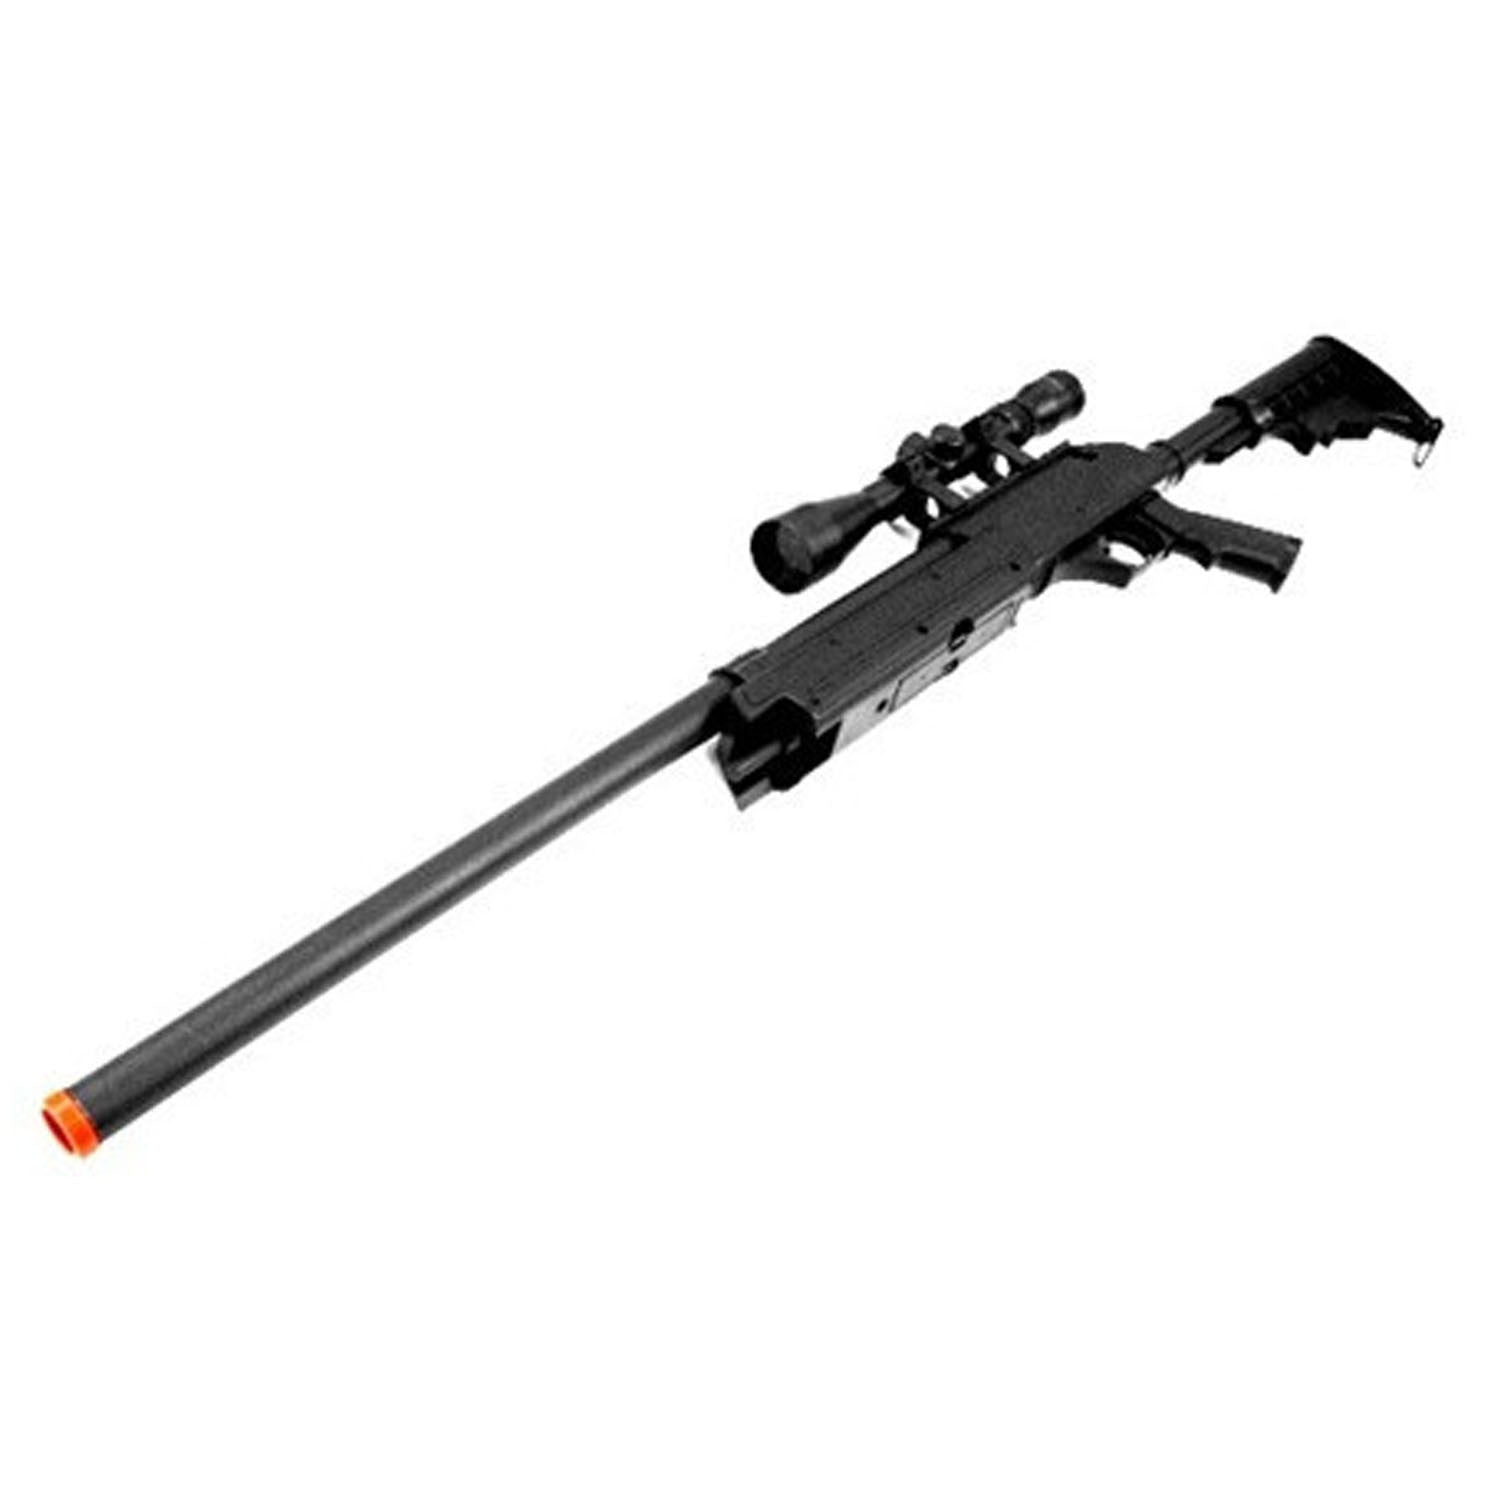 ASR Bolt Action Sniper Rifle